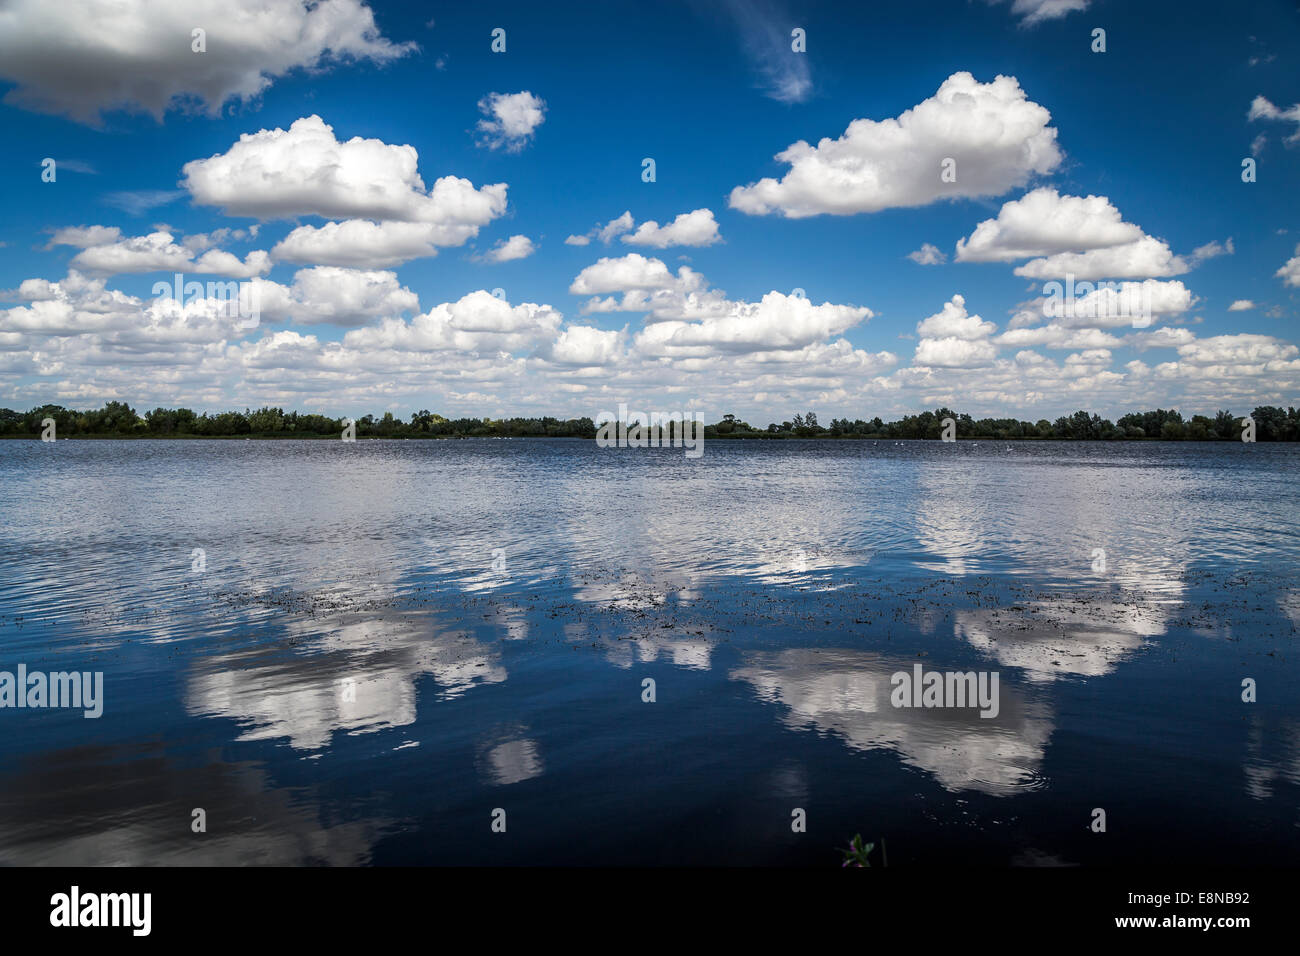 Reflections of white fluffy clouds in a lake on a blue, sky, sunny day - Stock Image